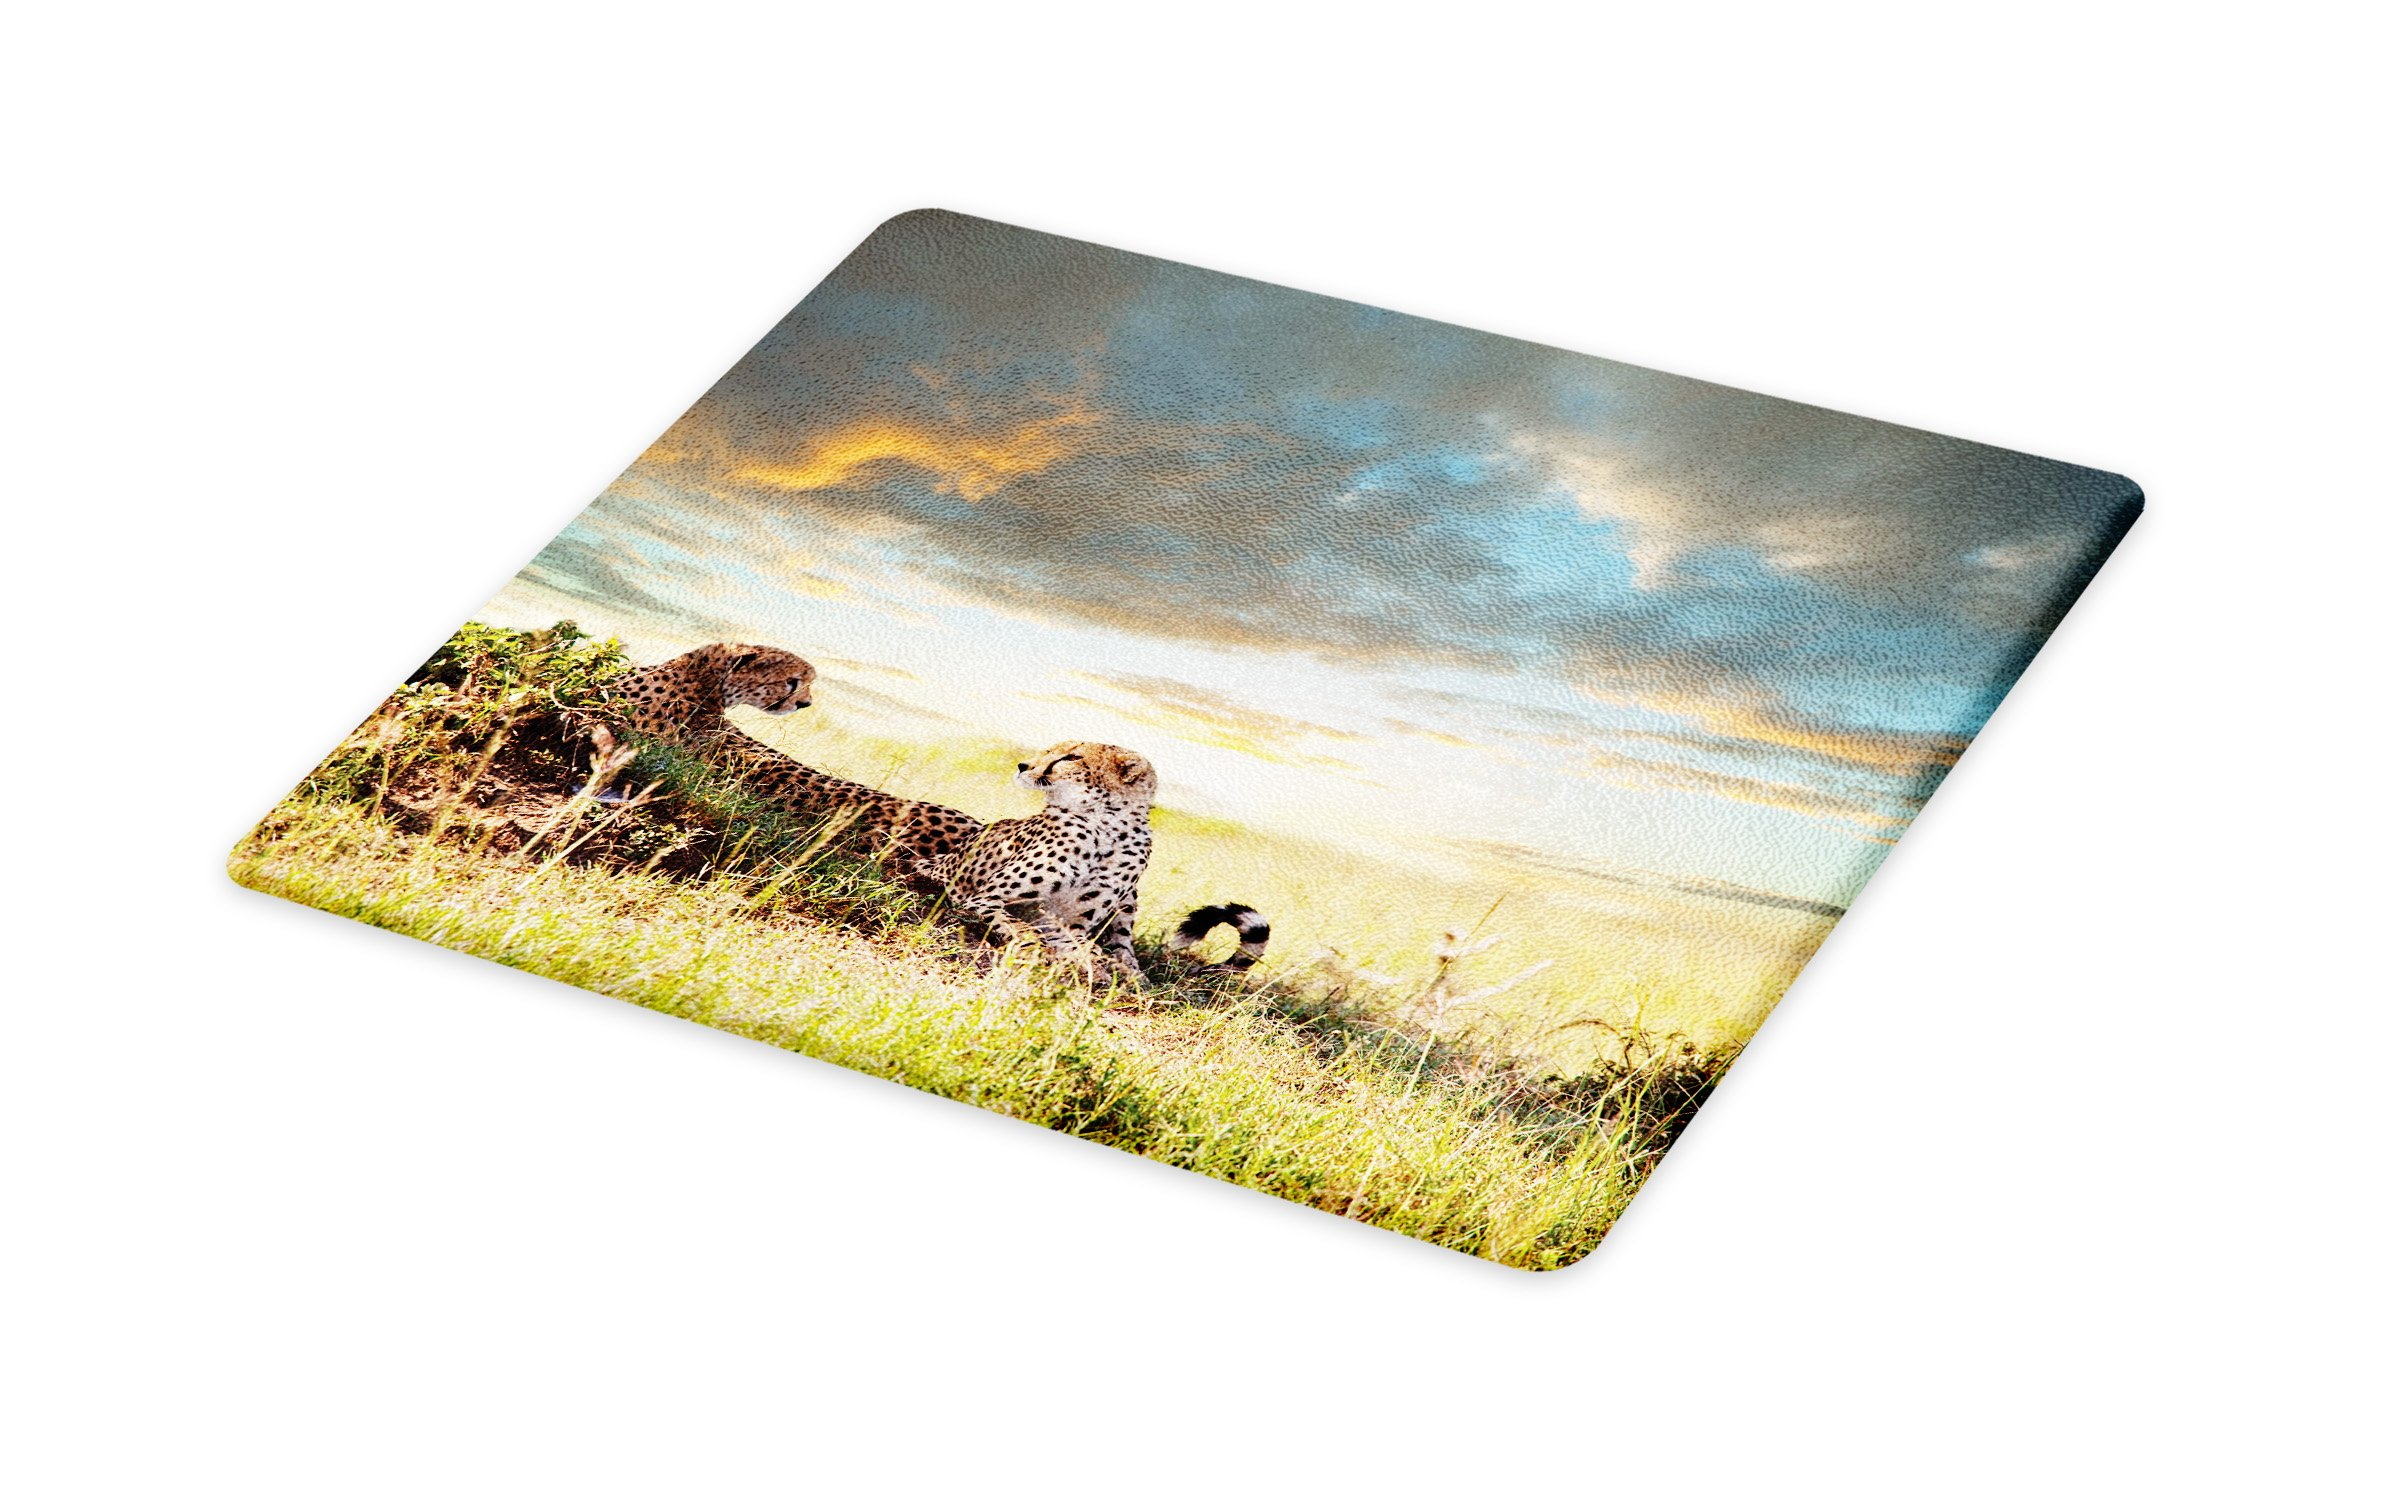 Lunarable Safari Cutting Board, Two Cheetahs in Africa Nature Grass Dangerous Animals Hunters Rainy Weather Picture, Decorative Tempered Glass Cutting and Serving Board, Small Size, Multicolor